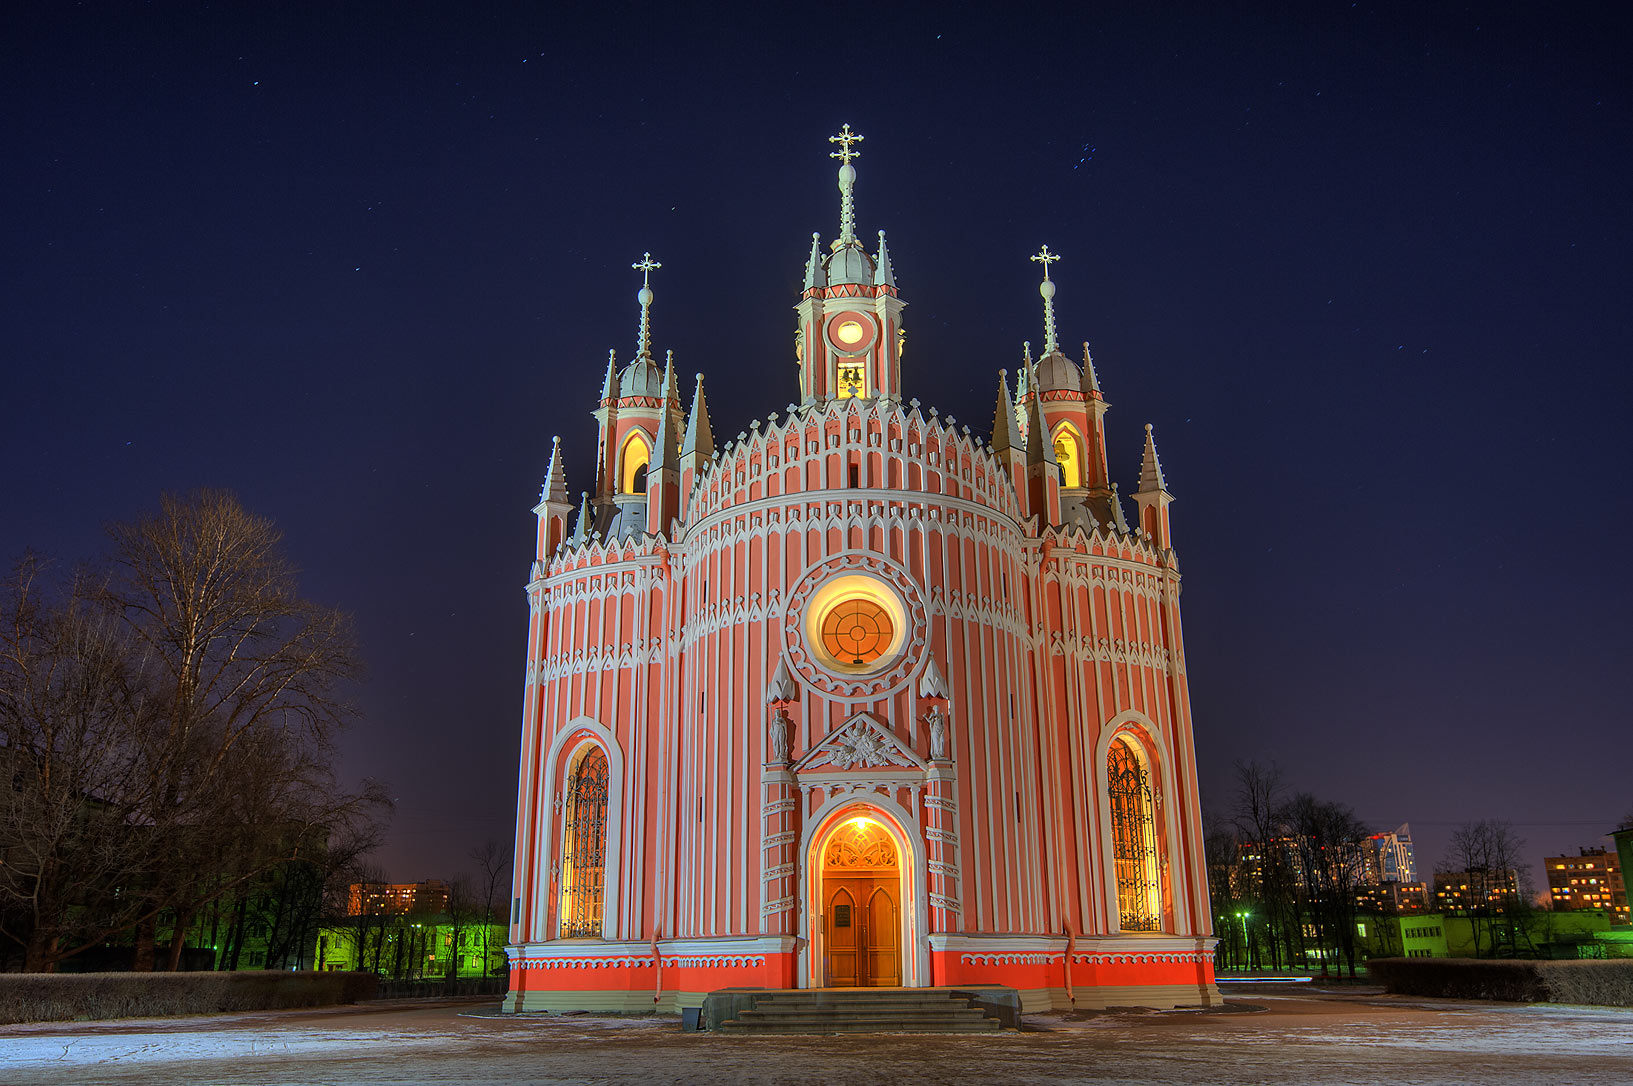 Building of Chesma (Chesmenskaya) Church at evening. St.Petersburg, Russia